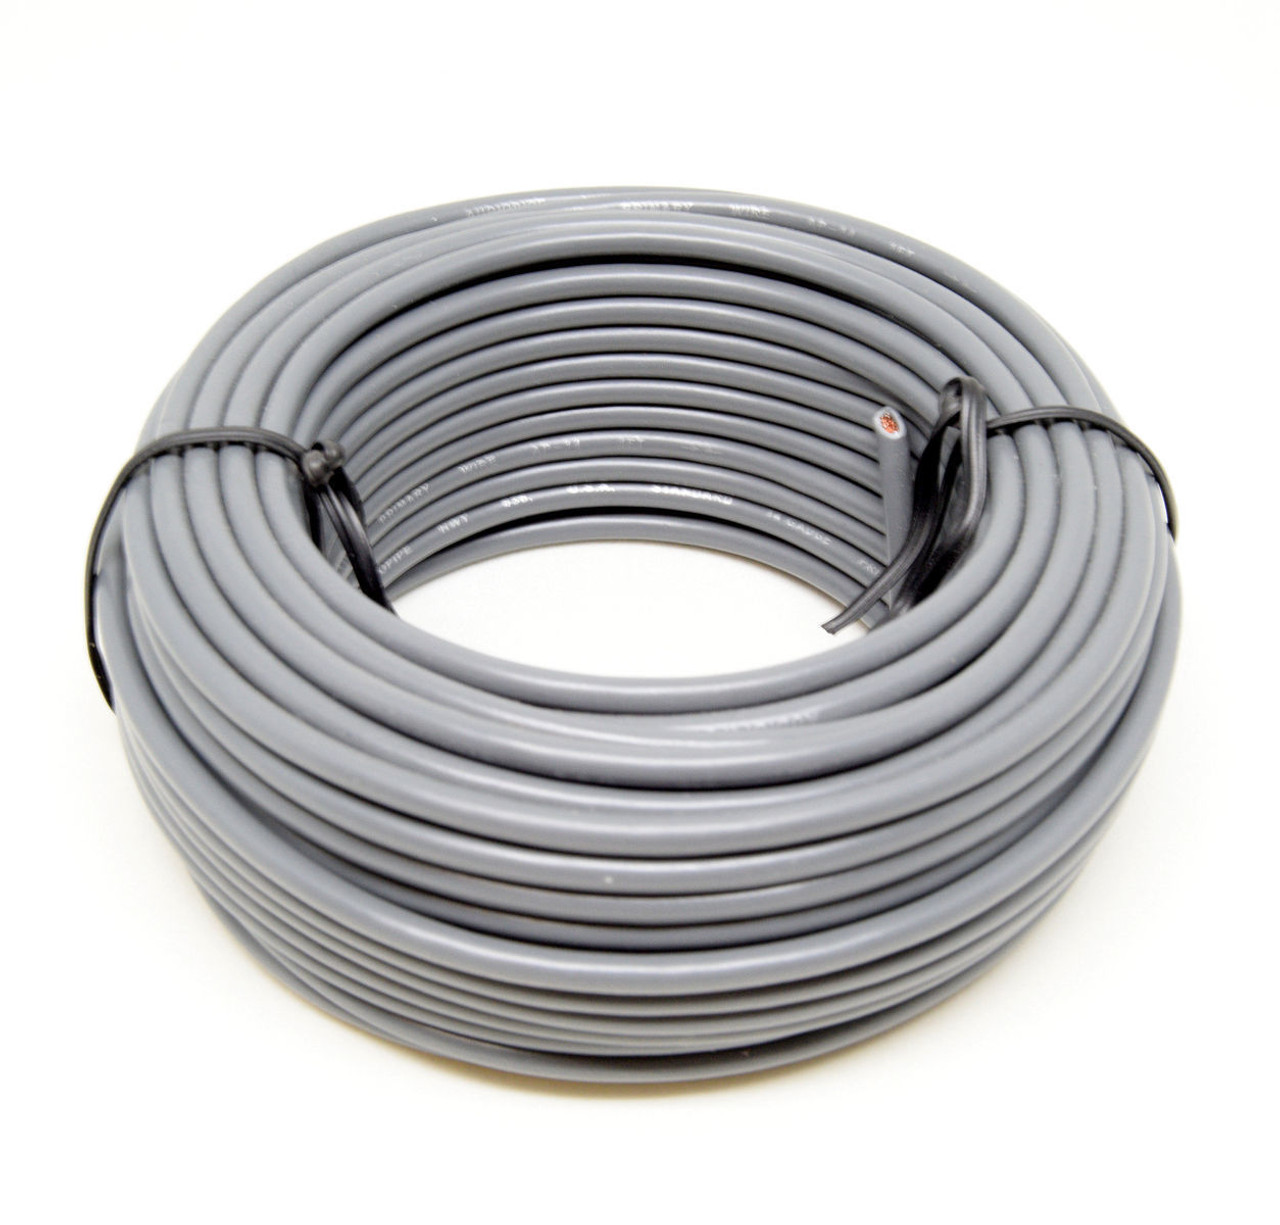 hight resolution of 14 ga 50 gray audiopipe car audio home remote primary cable wire